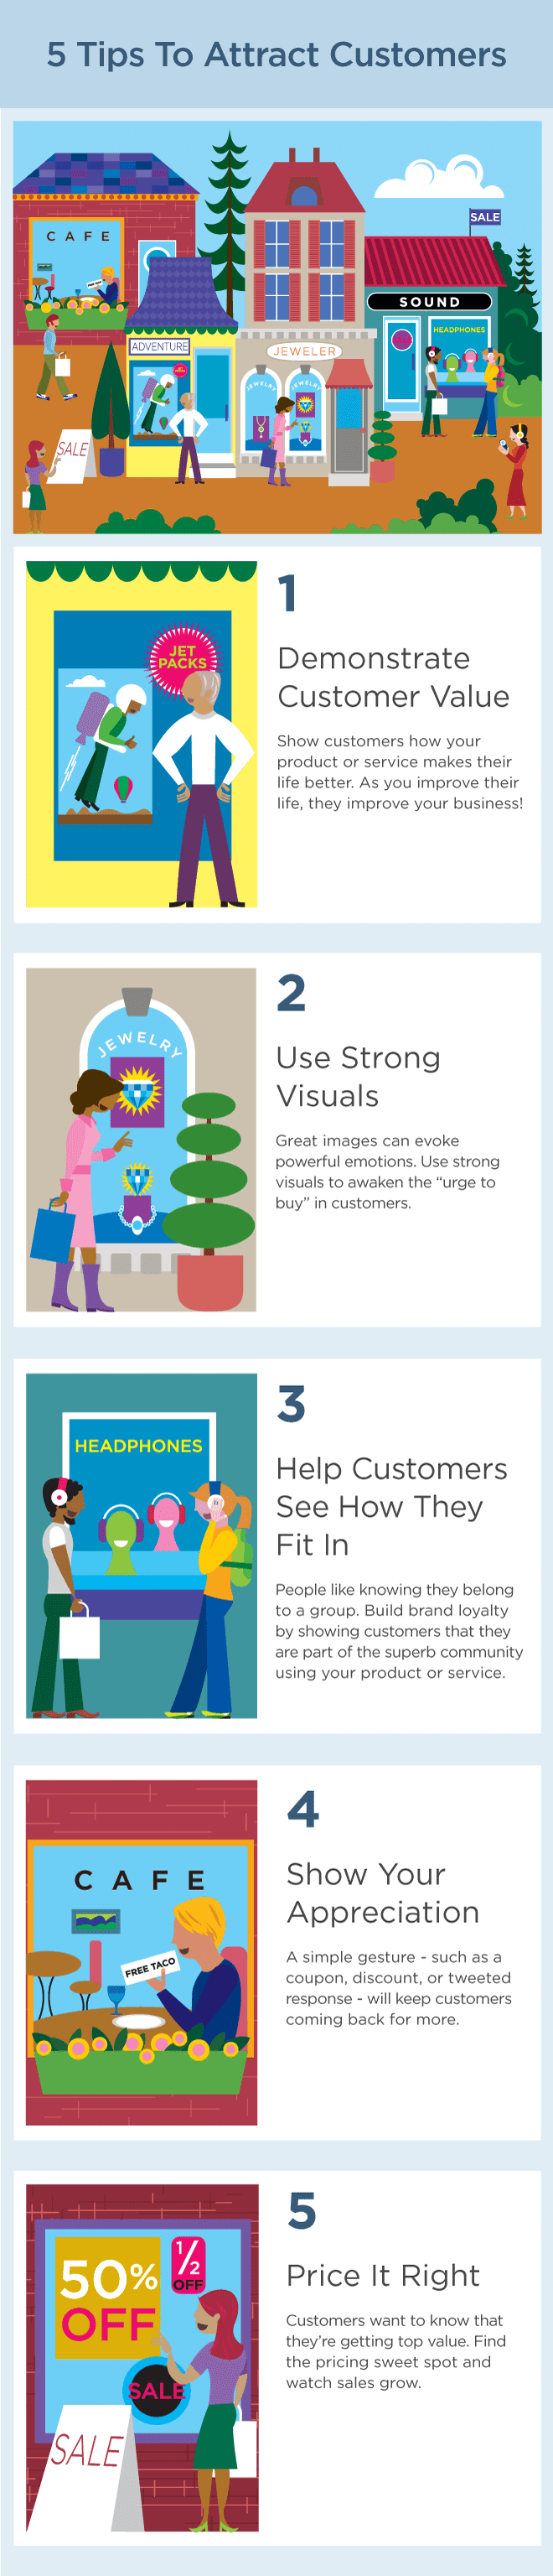 5 Tips to Attract Customers #infographic #Customers #Attract Customers #Business #Tips